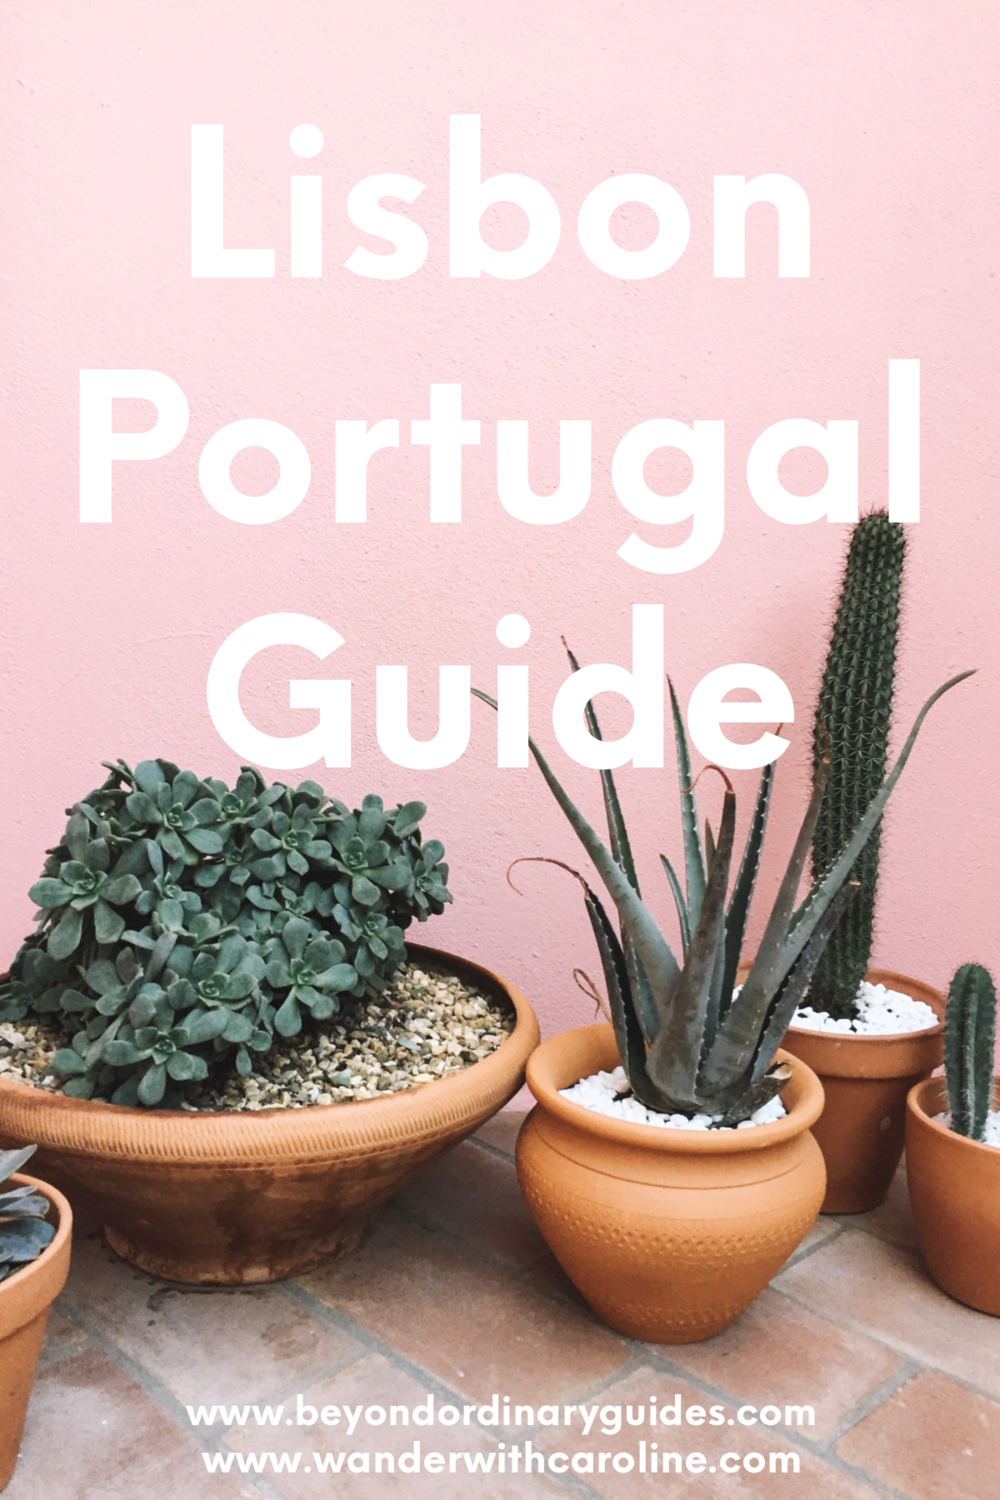 Lisbon Portugal Guide by Beyond Ordinary Guides